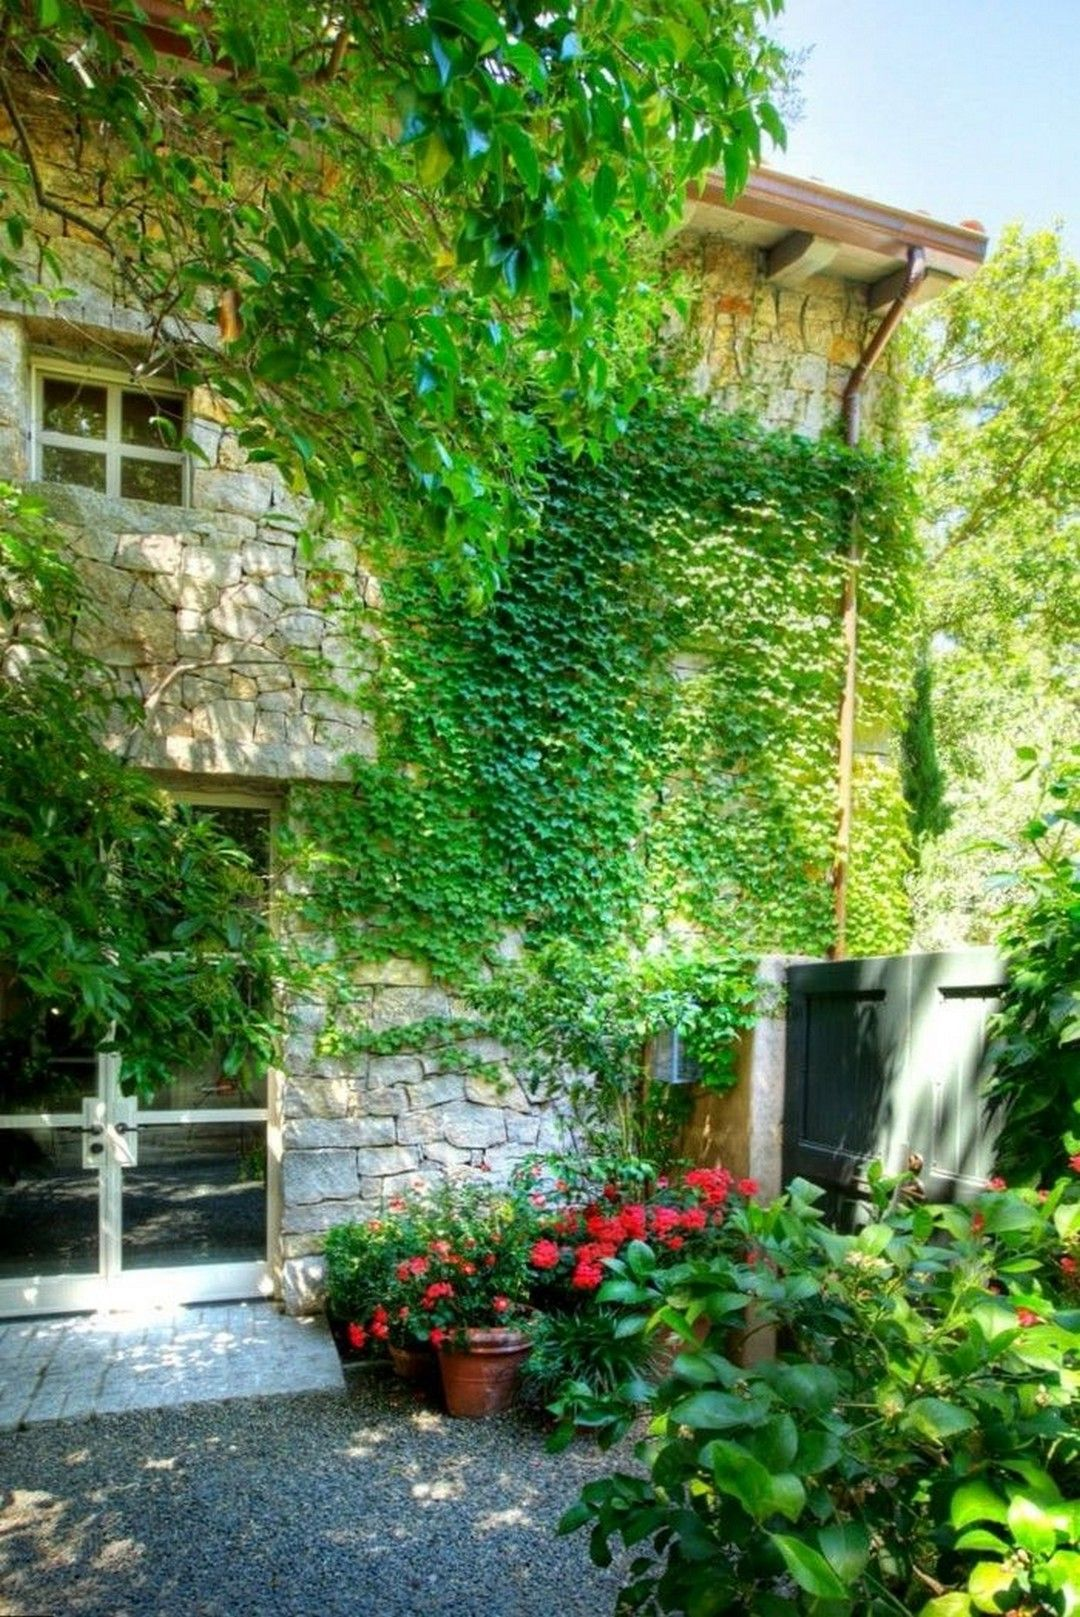 38 Climbing Plants Decor Ideas To Make A Perfect Garden Https Www